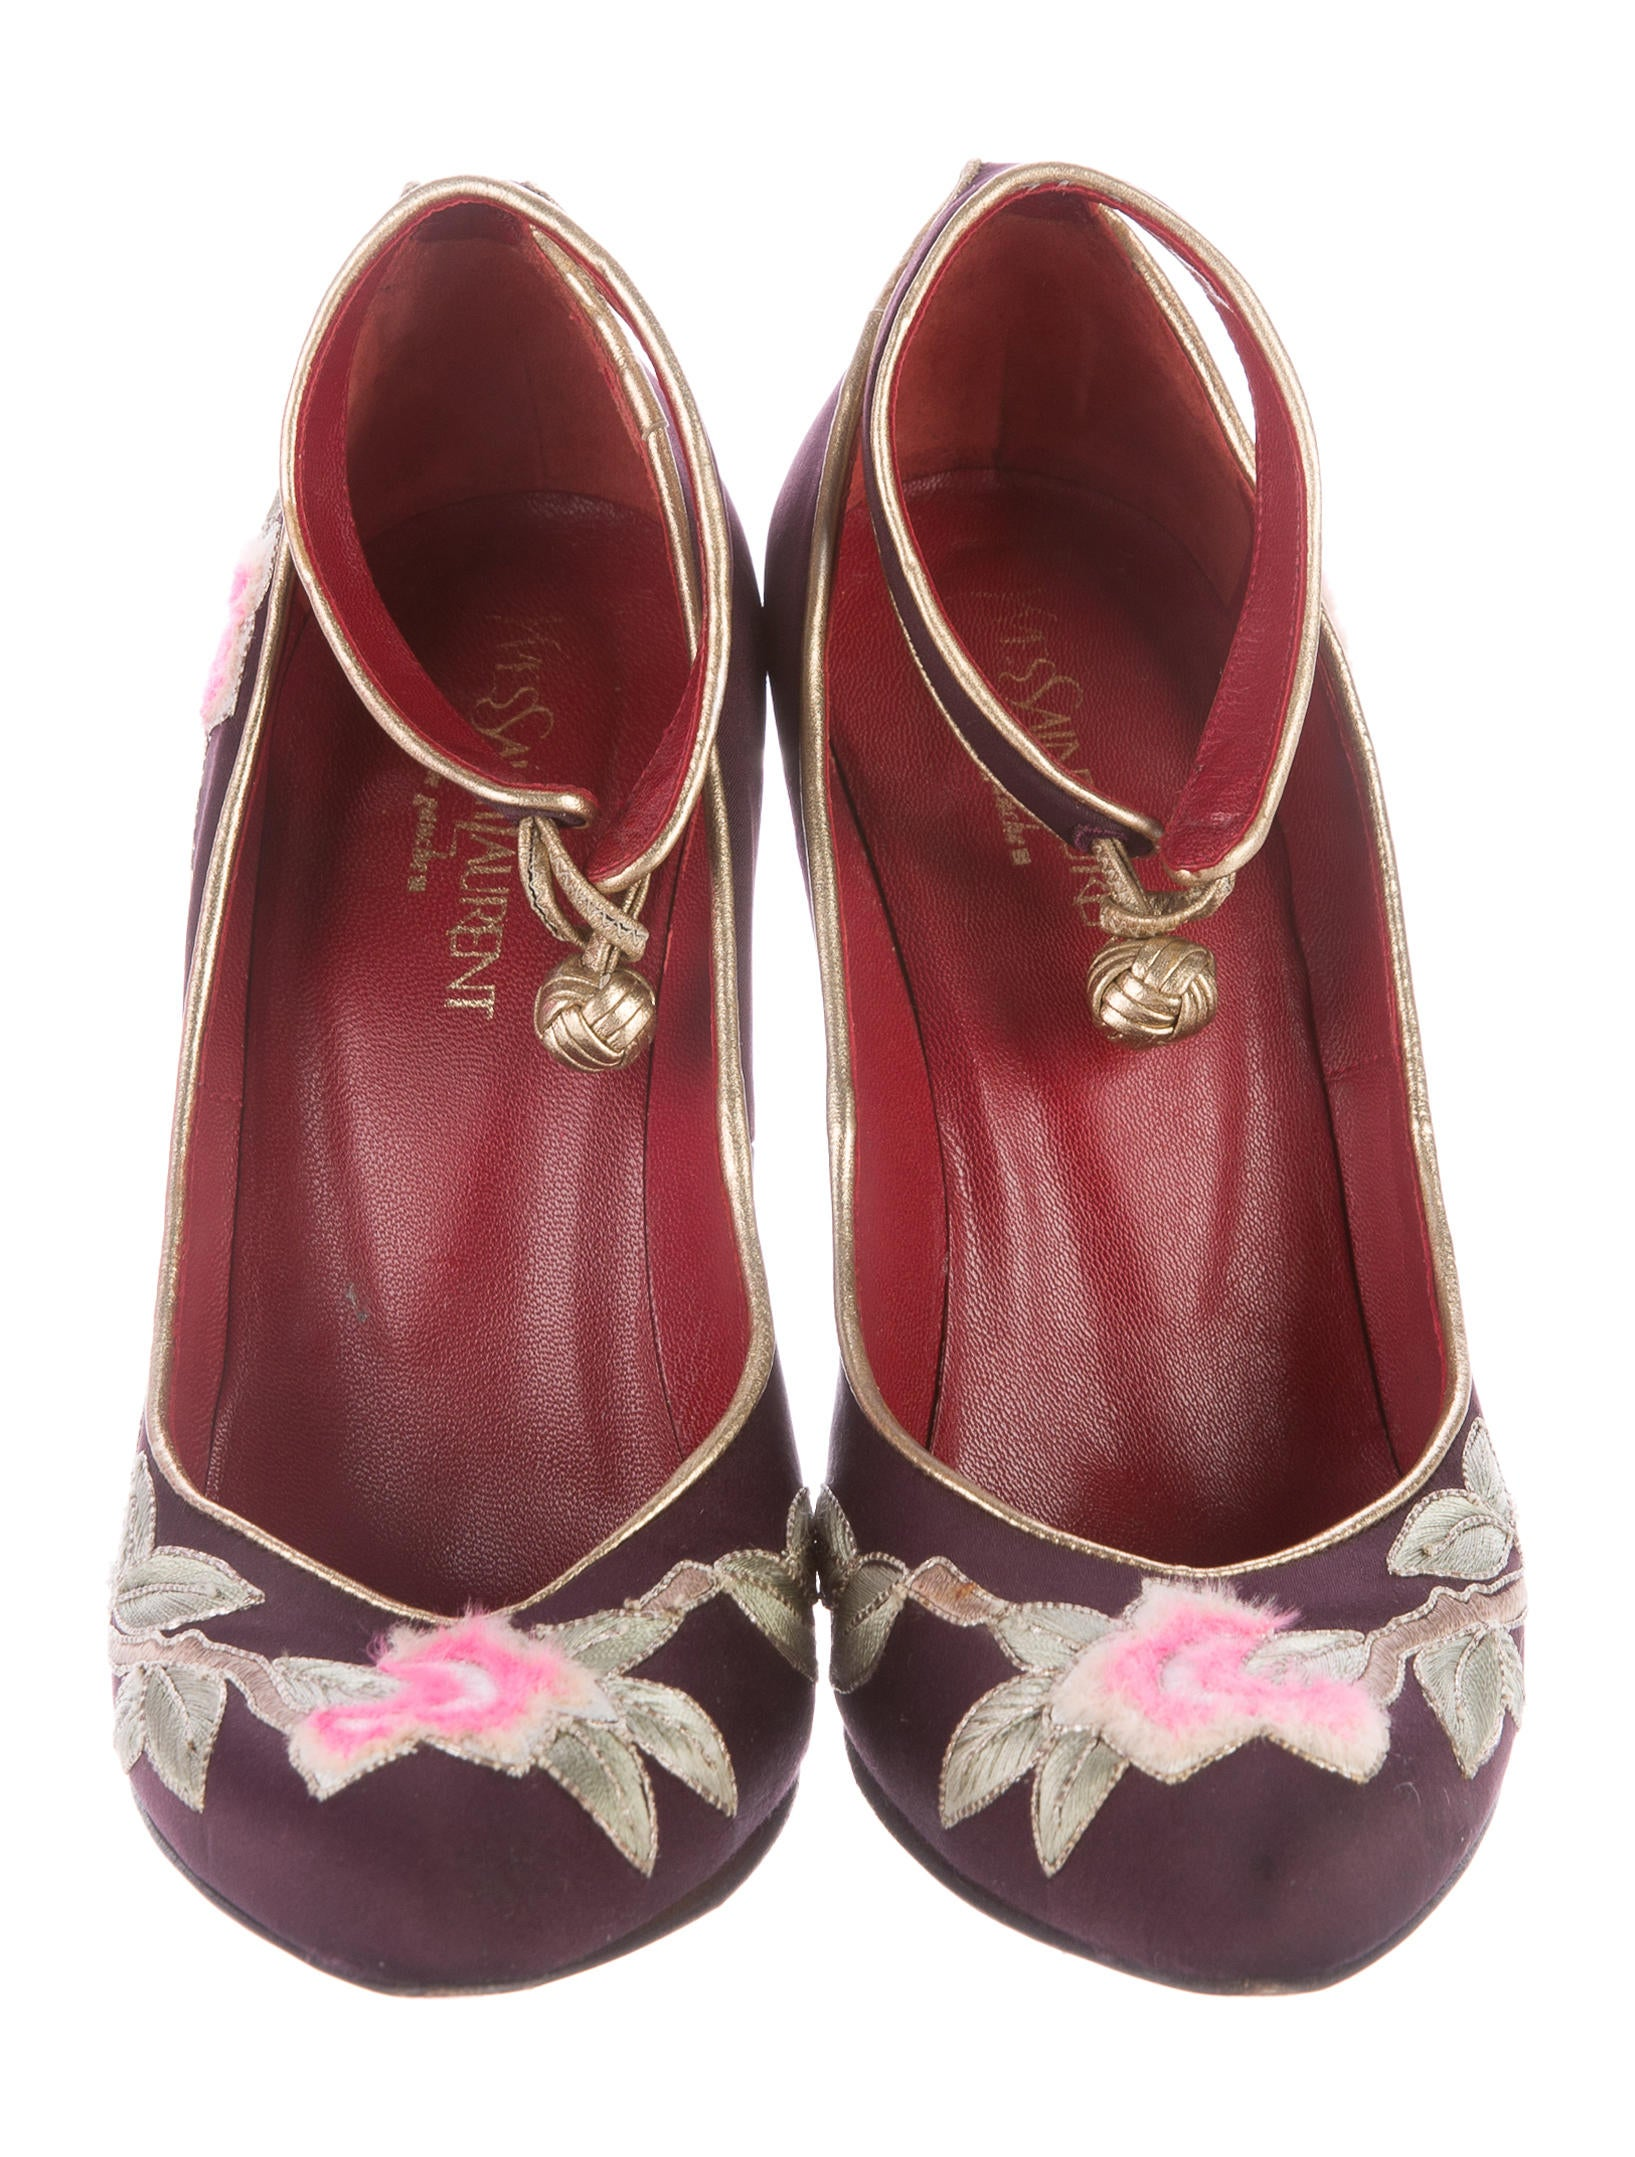 Yves saint laurent embroidered floral wedges shoes